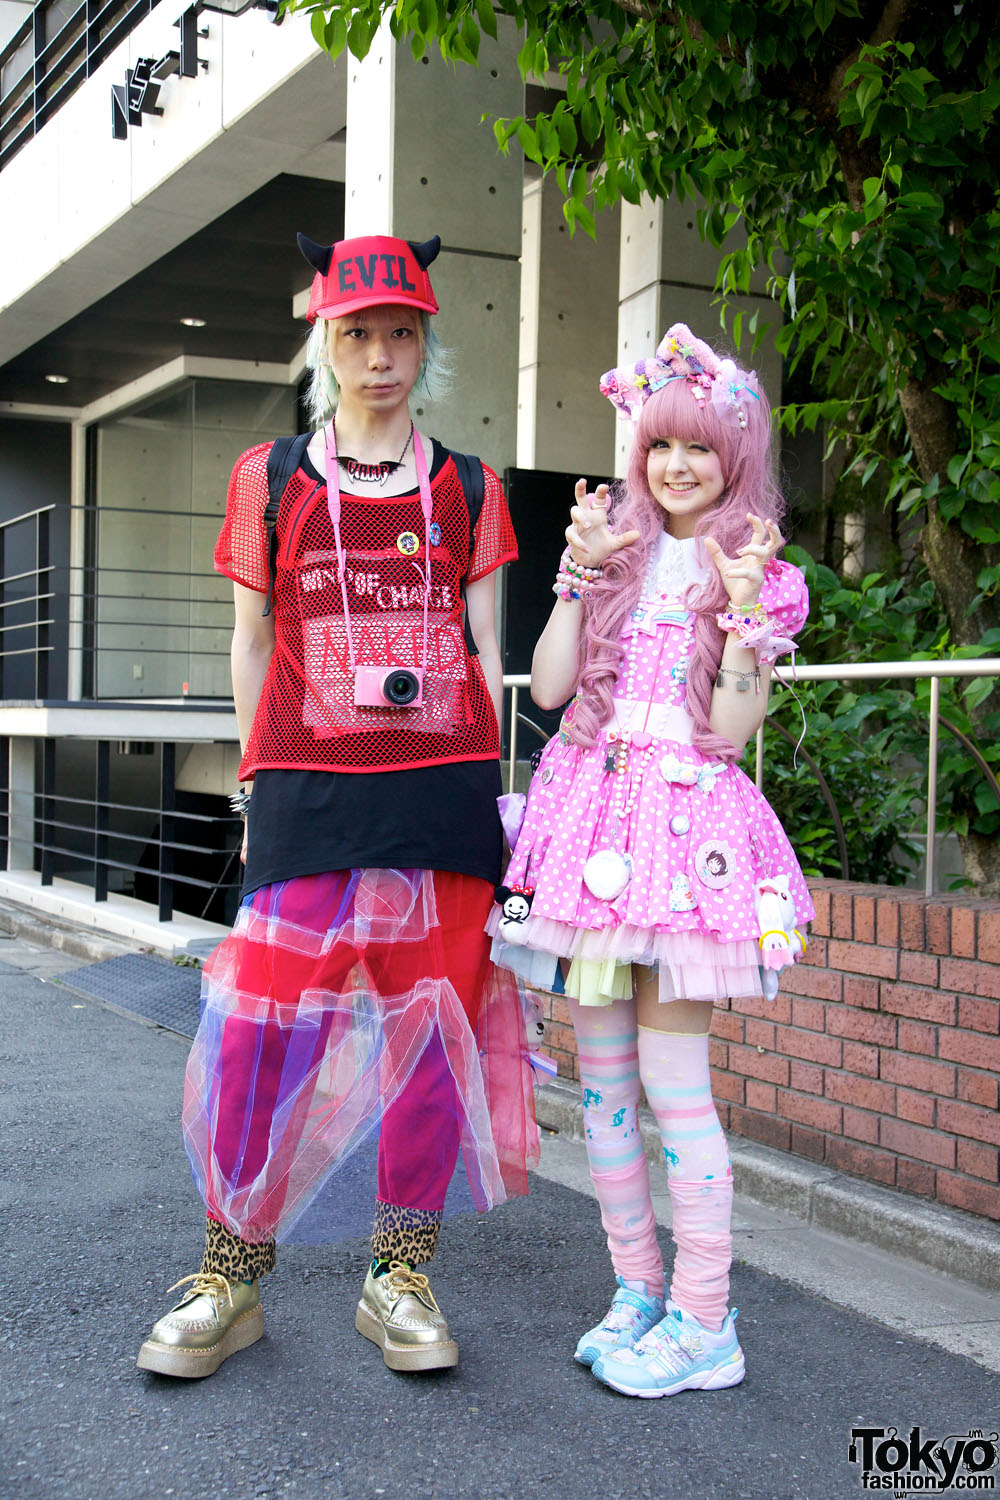 http://tokyofashion.com/wp-content/uploads/2012/06/Harajuku-Fashion-Walk-Street-Snaps-10-2012-001.jpg